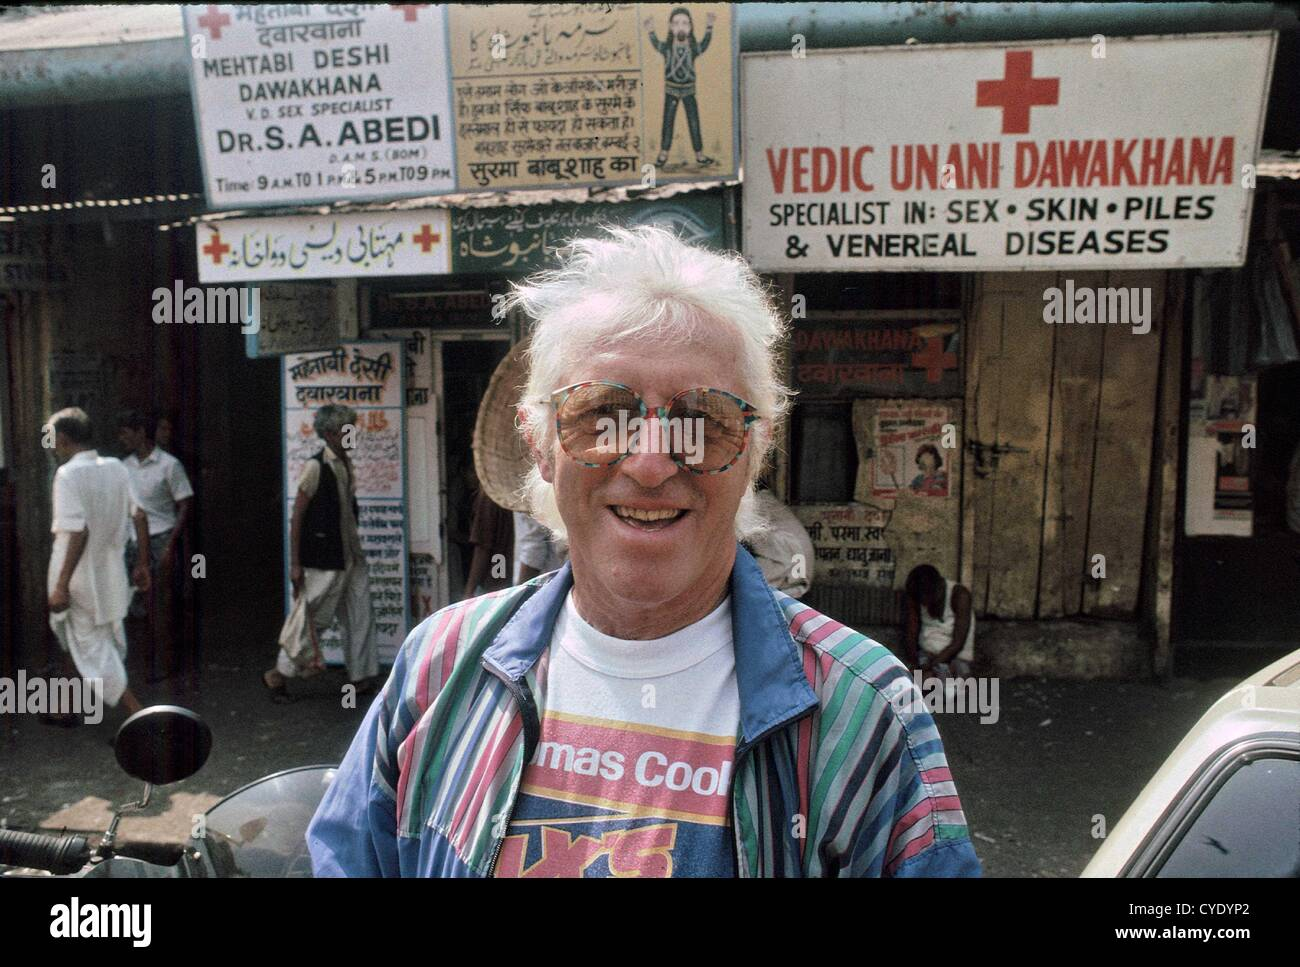 Sexual Abuse Scandal Sir Jimmy Savile, OBE pictured outside a Sex Clinic in Mumbai, India in 1992. While other passengers Stock Photo